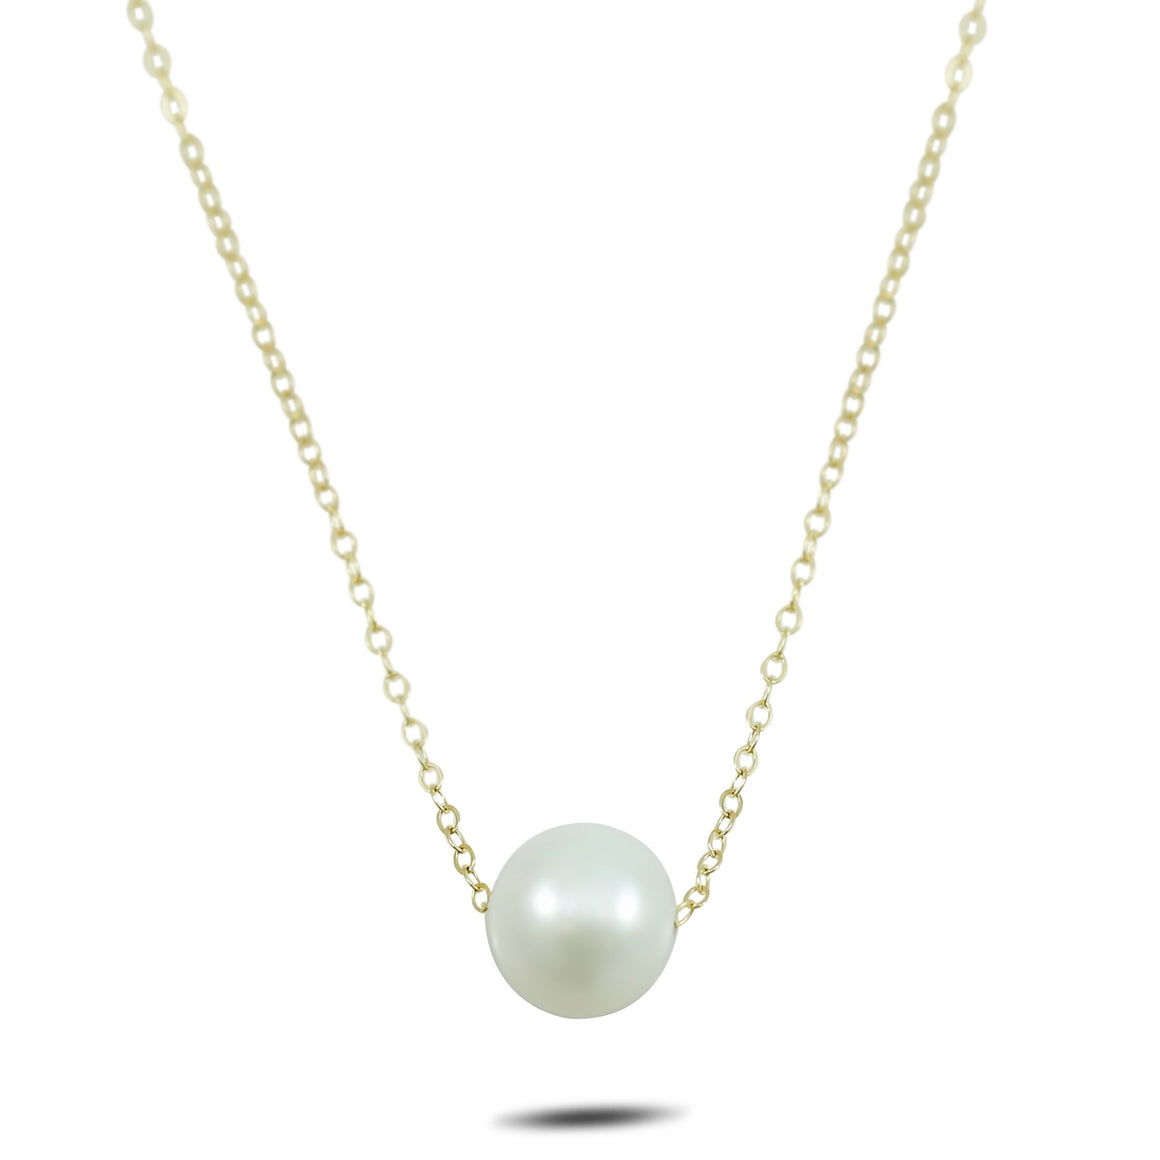 10mm pearl necklace 14k yellow gold 17in chain